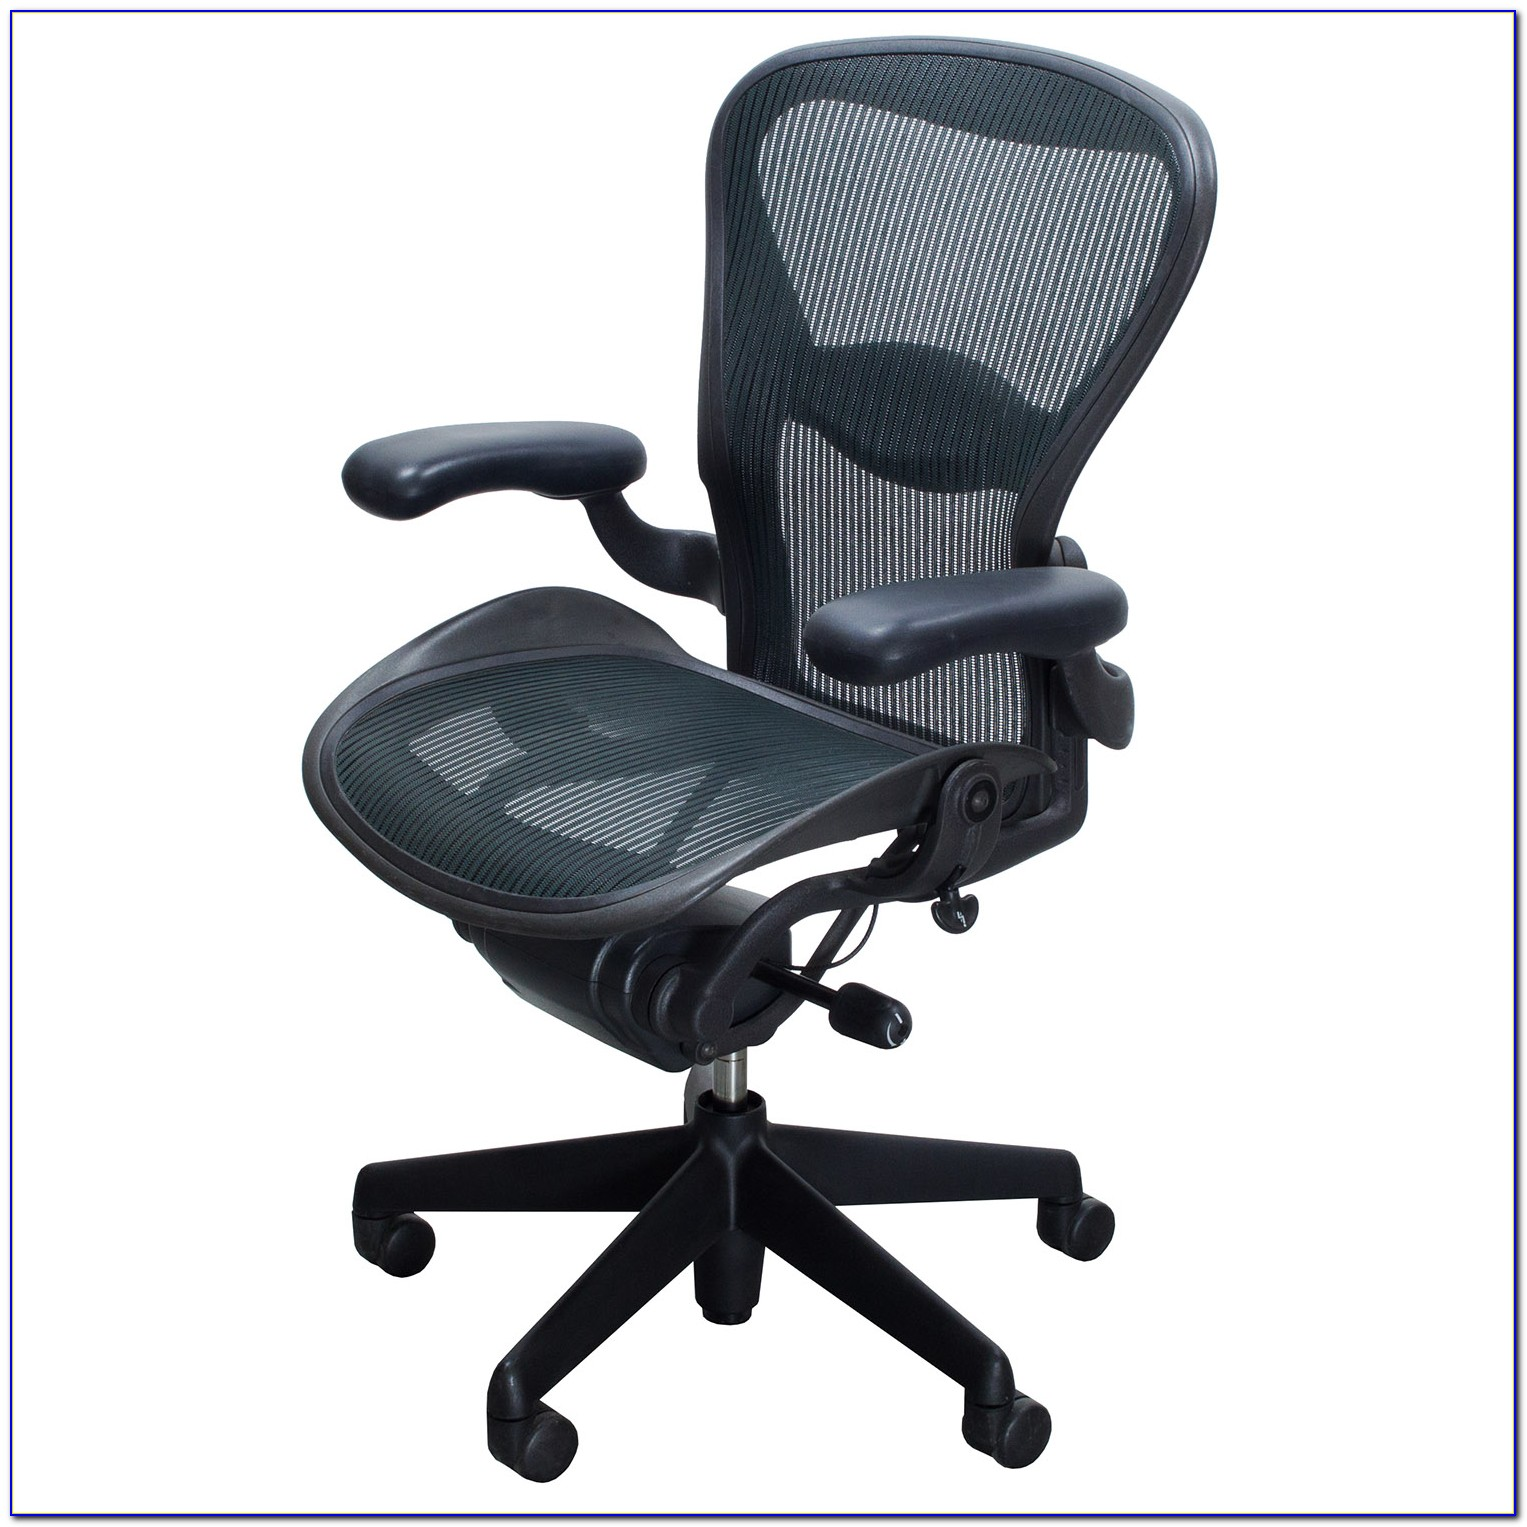 Herman Miller Aeron Chairs Sizes